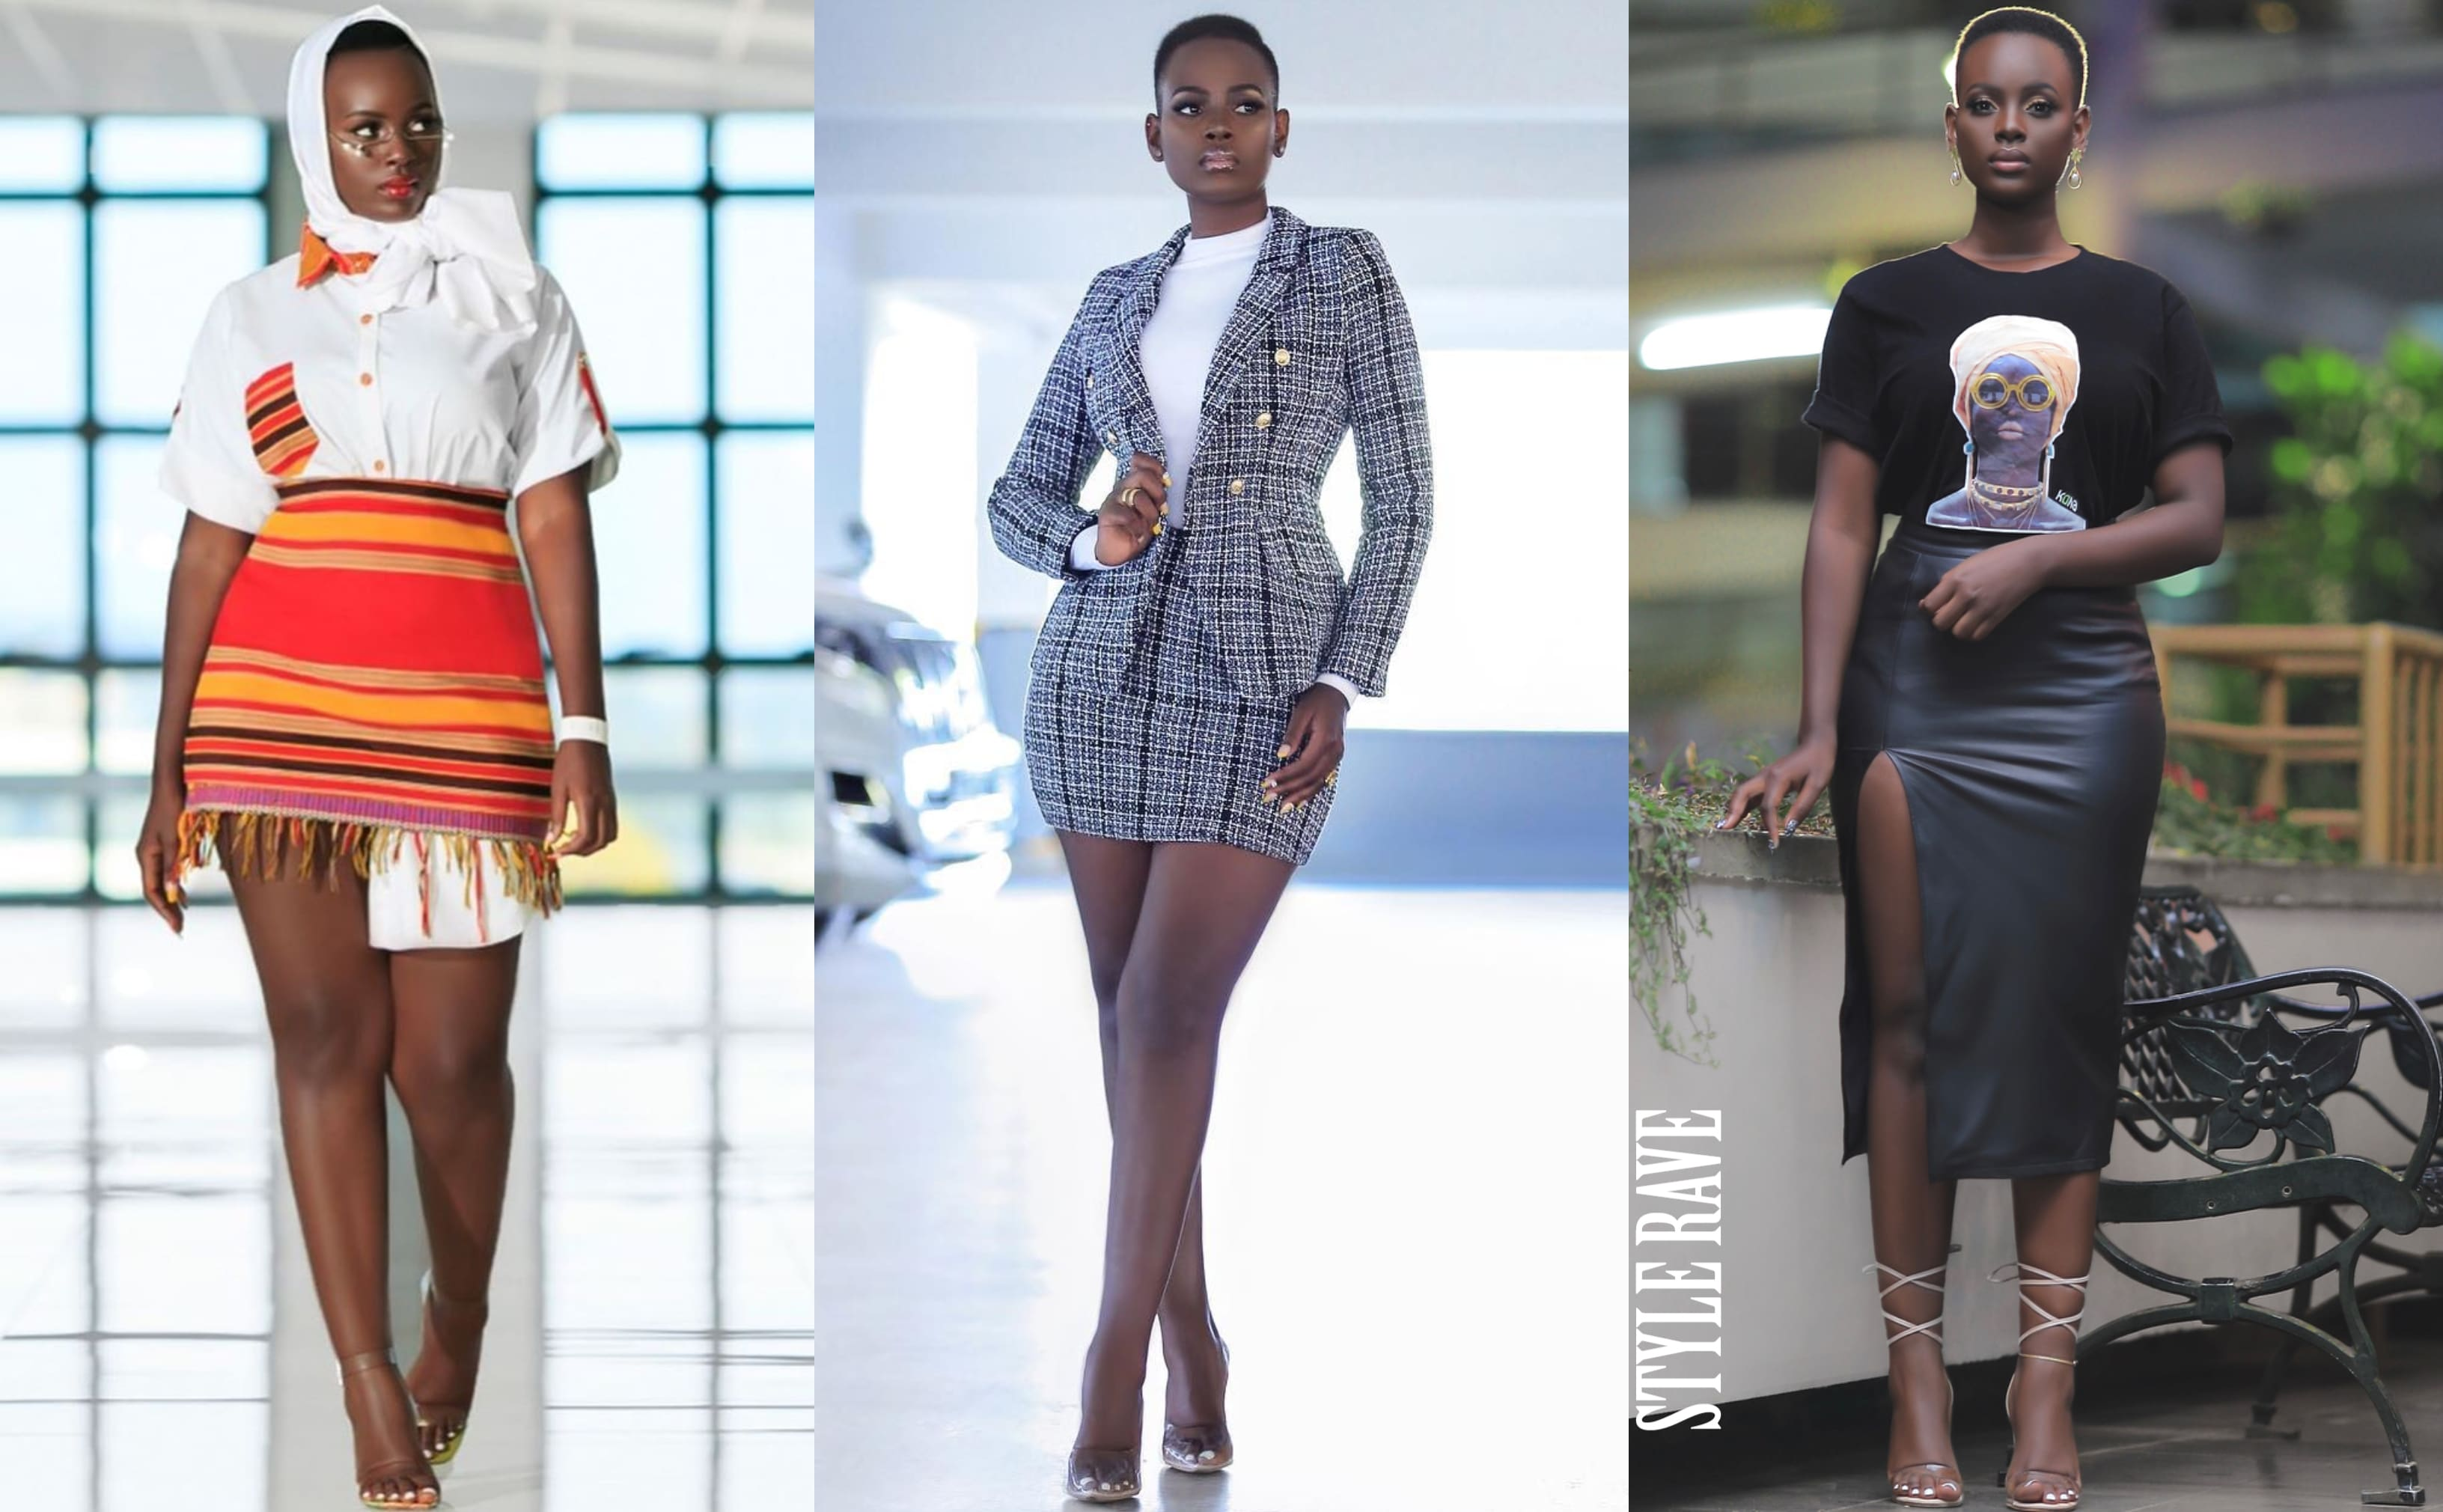 bettinah-tianah-fashion-style-uganda-photos-2020-2